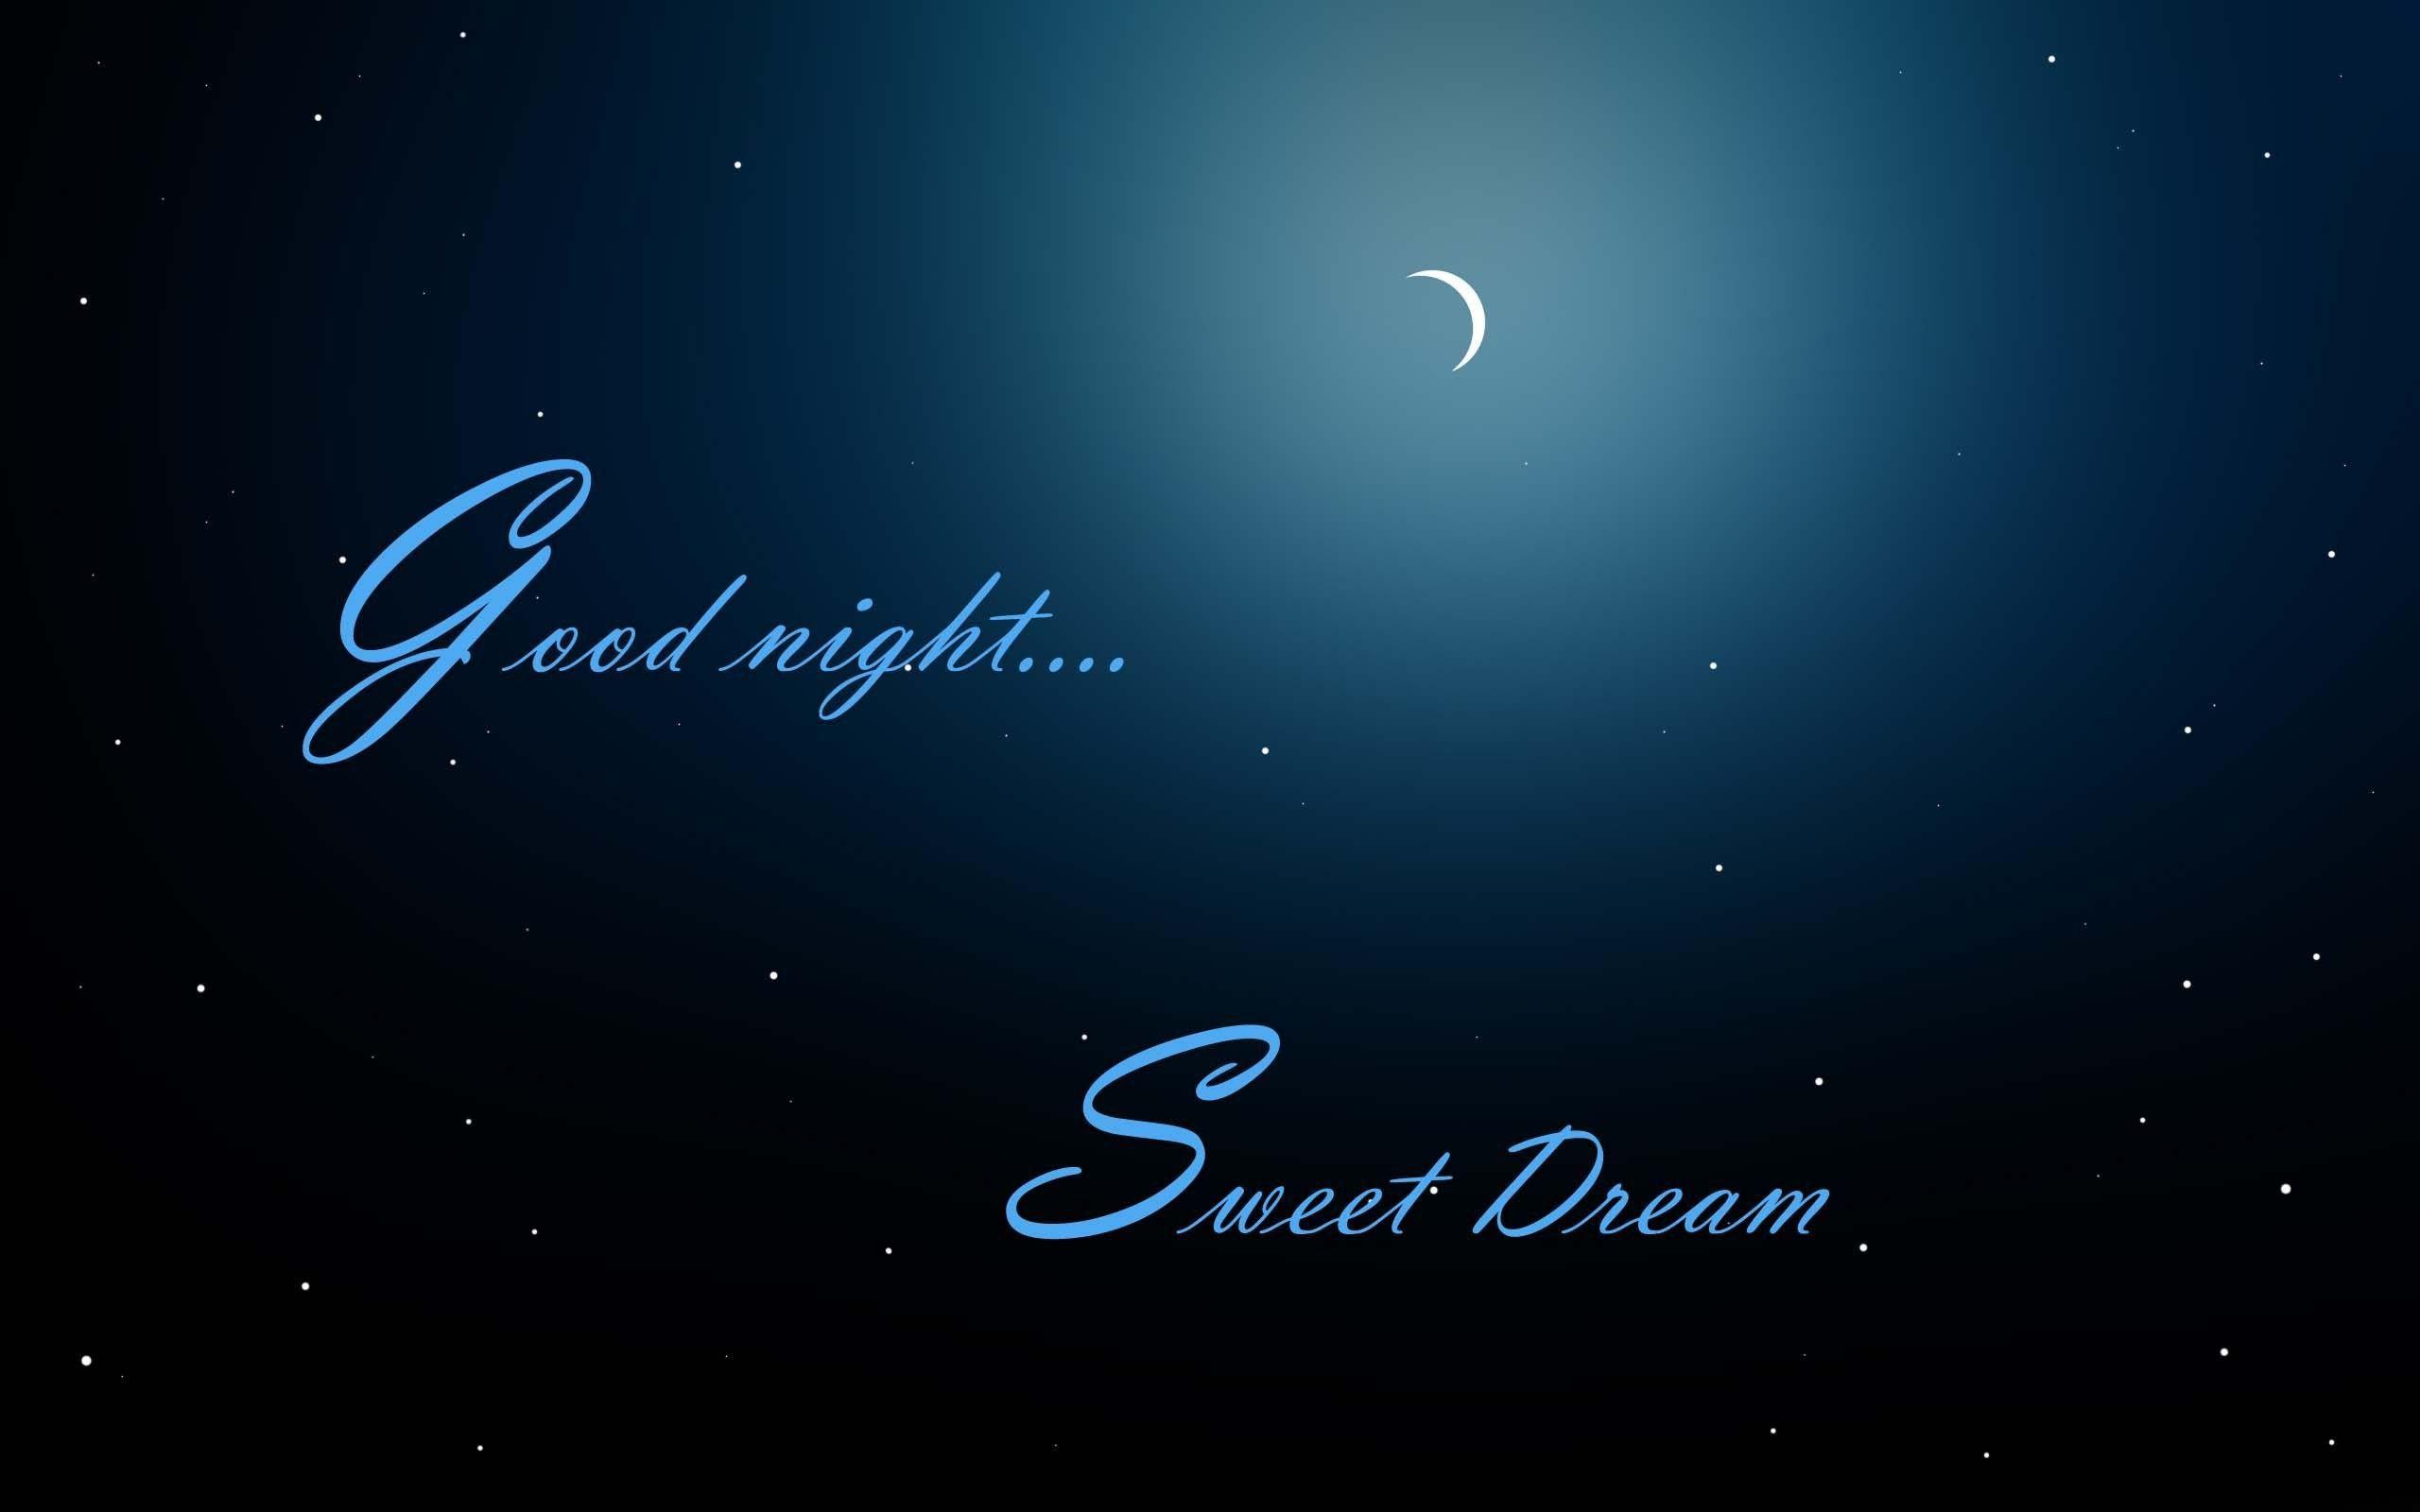 Good Night Wallpapers Hd Wallpaper Cave